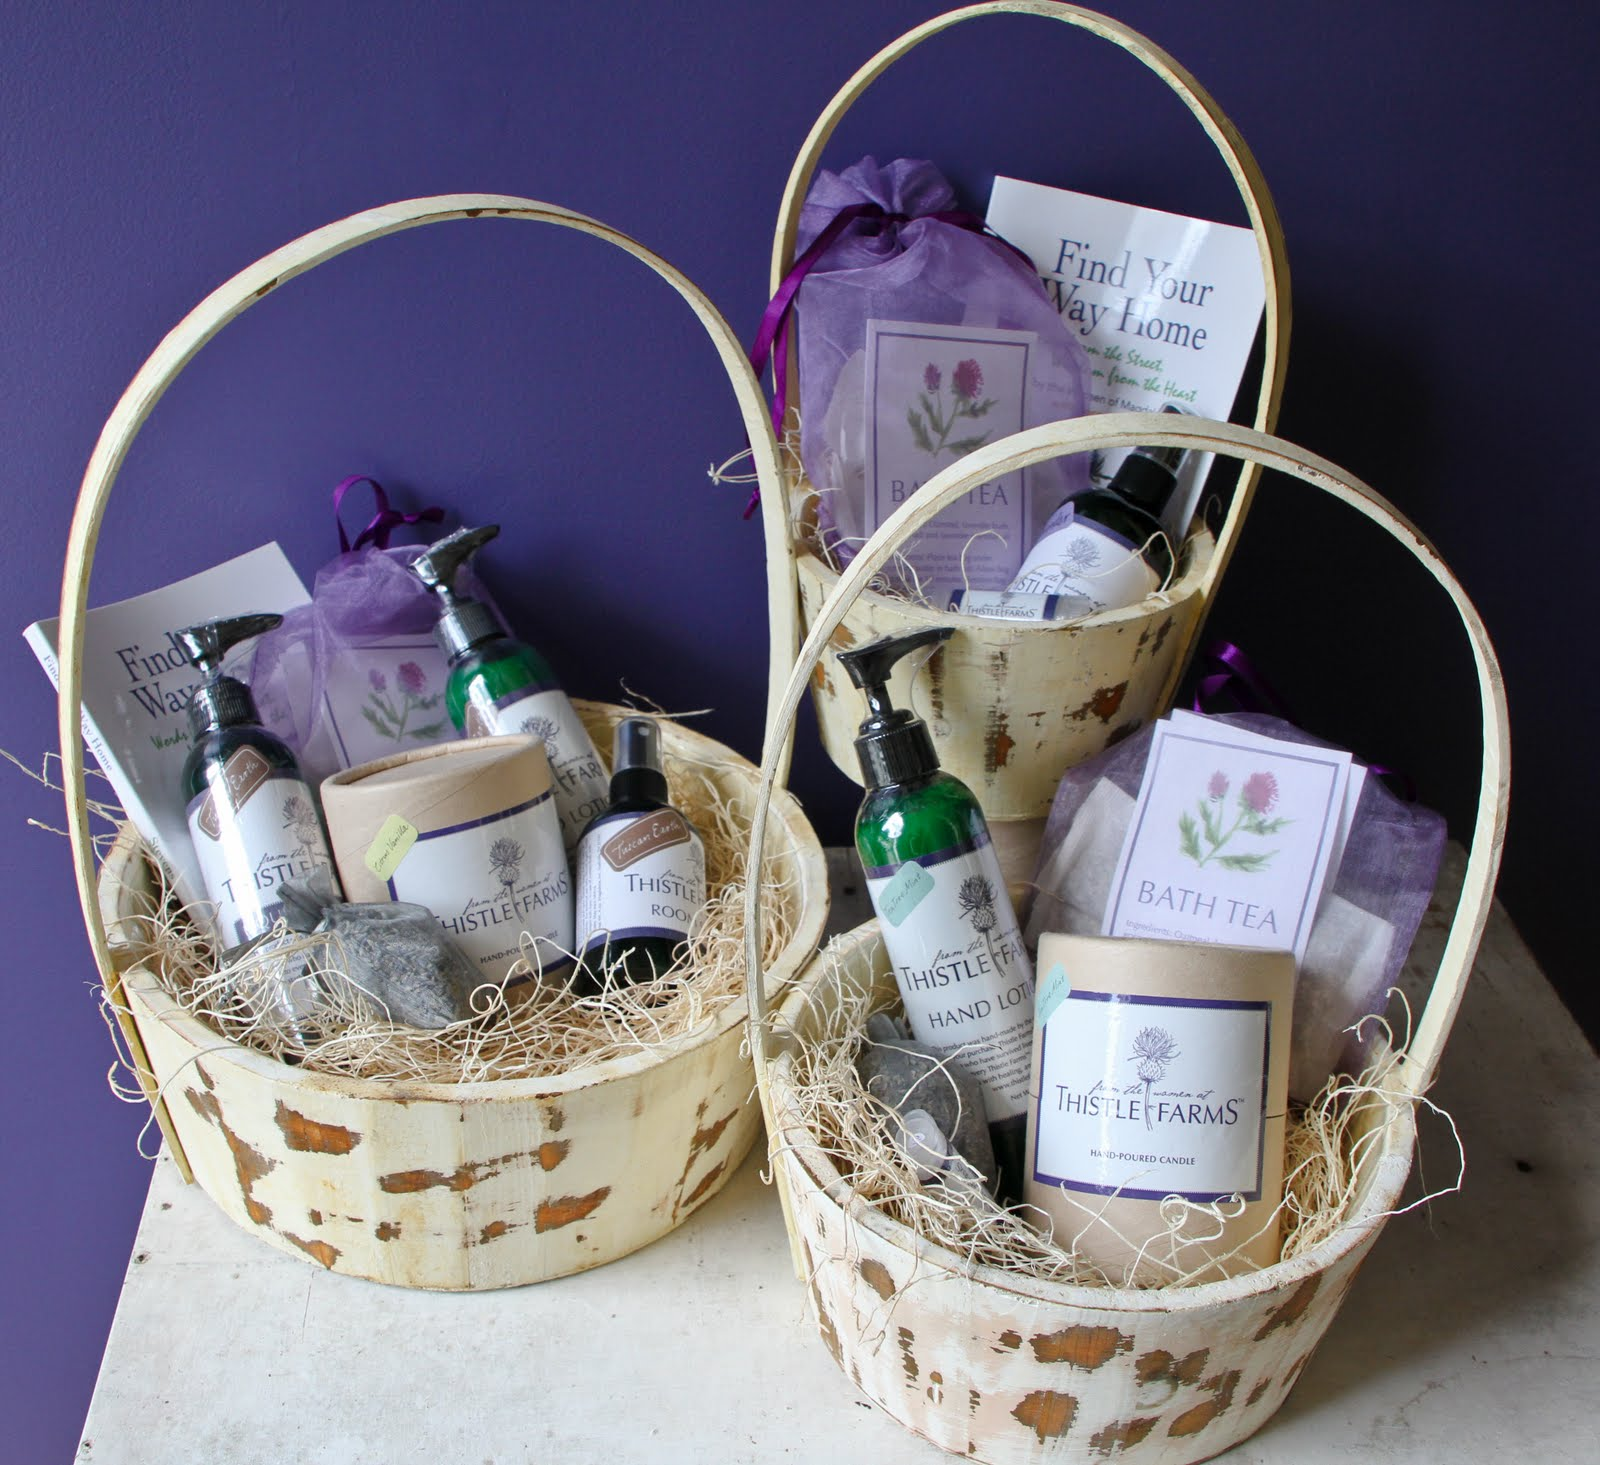 Wedding Party Gift Baskets: The Voices Of Thistle Farms: Have A Thistle Farms Wedding